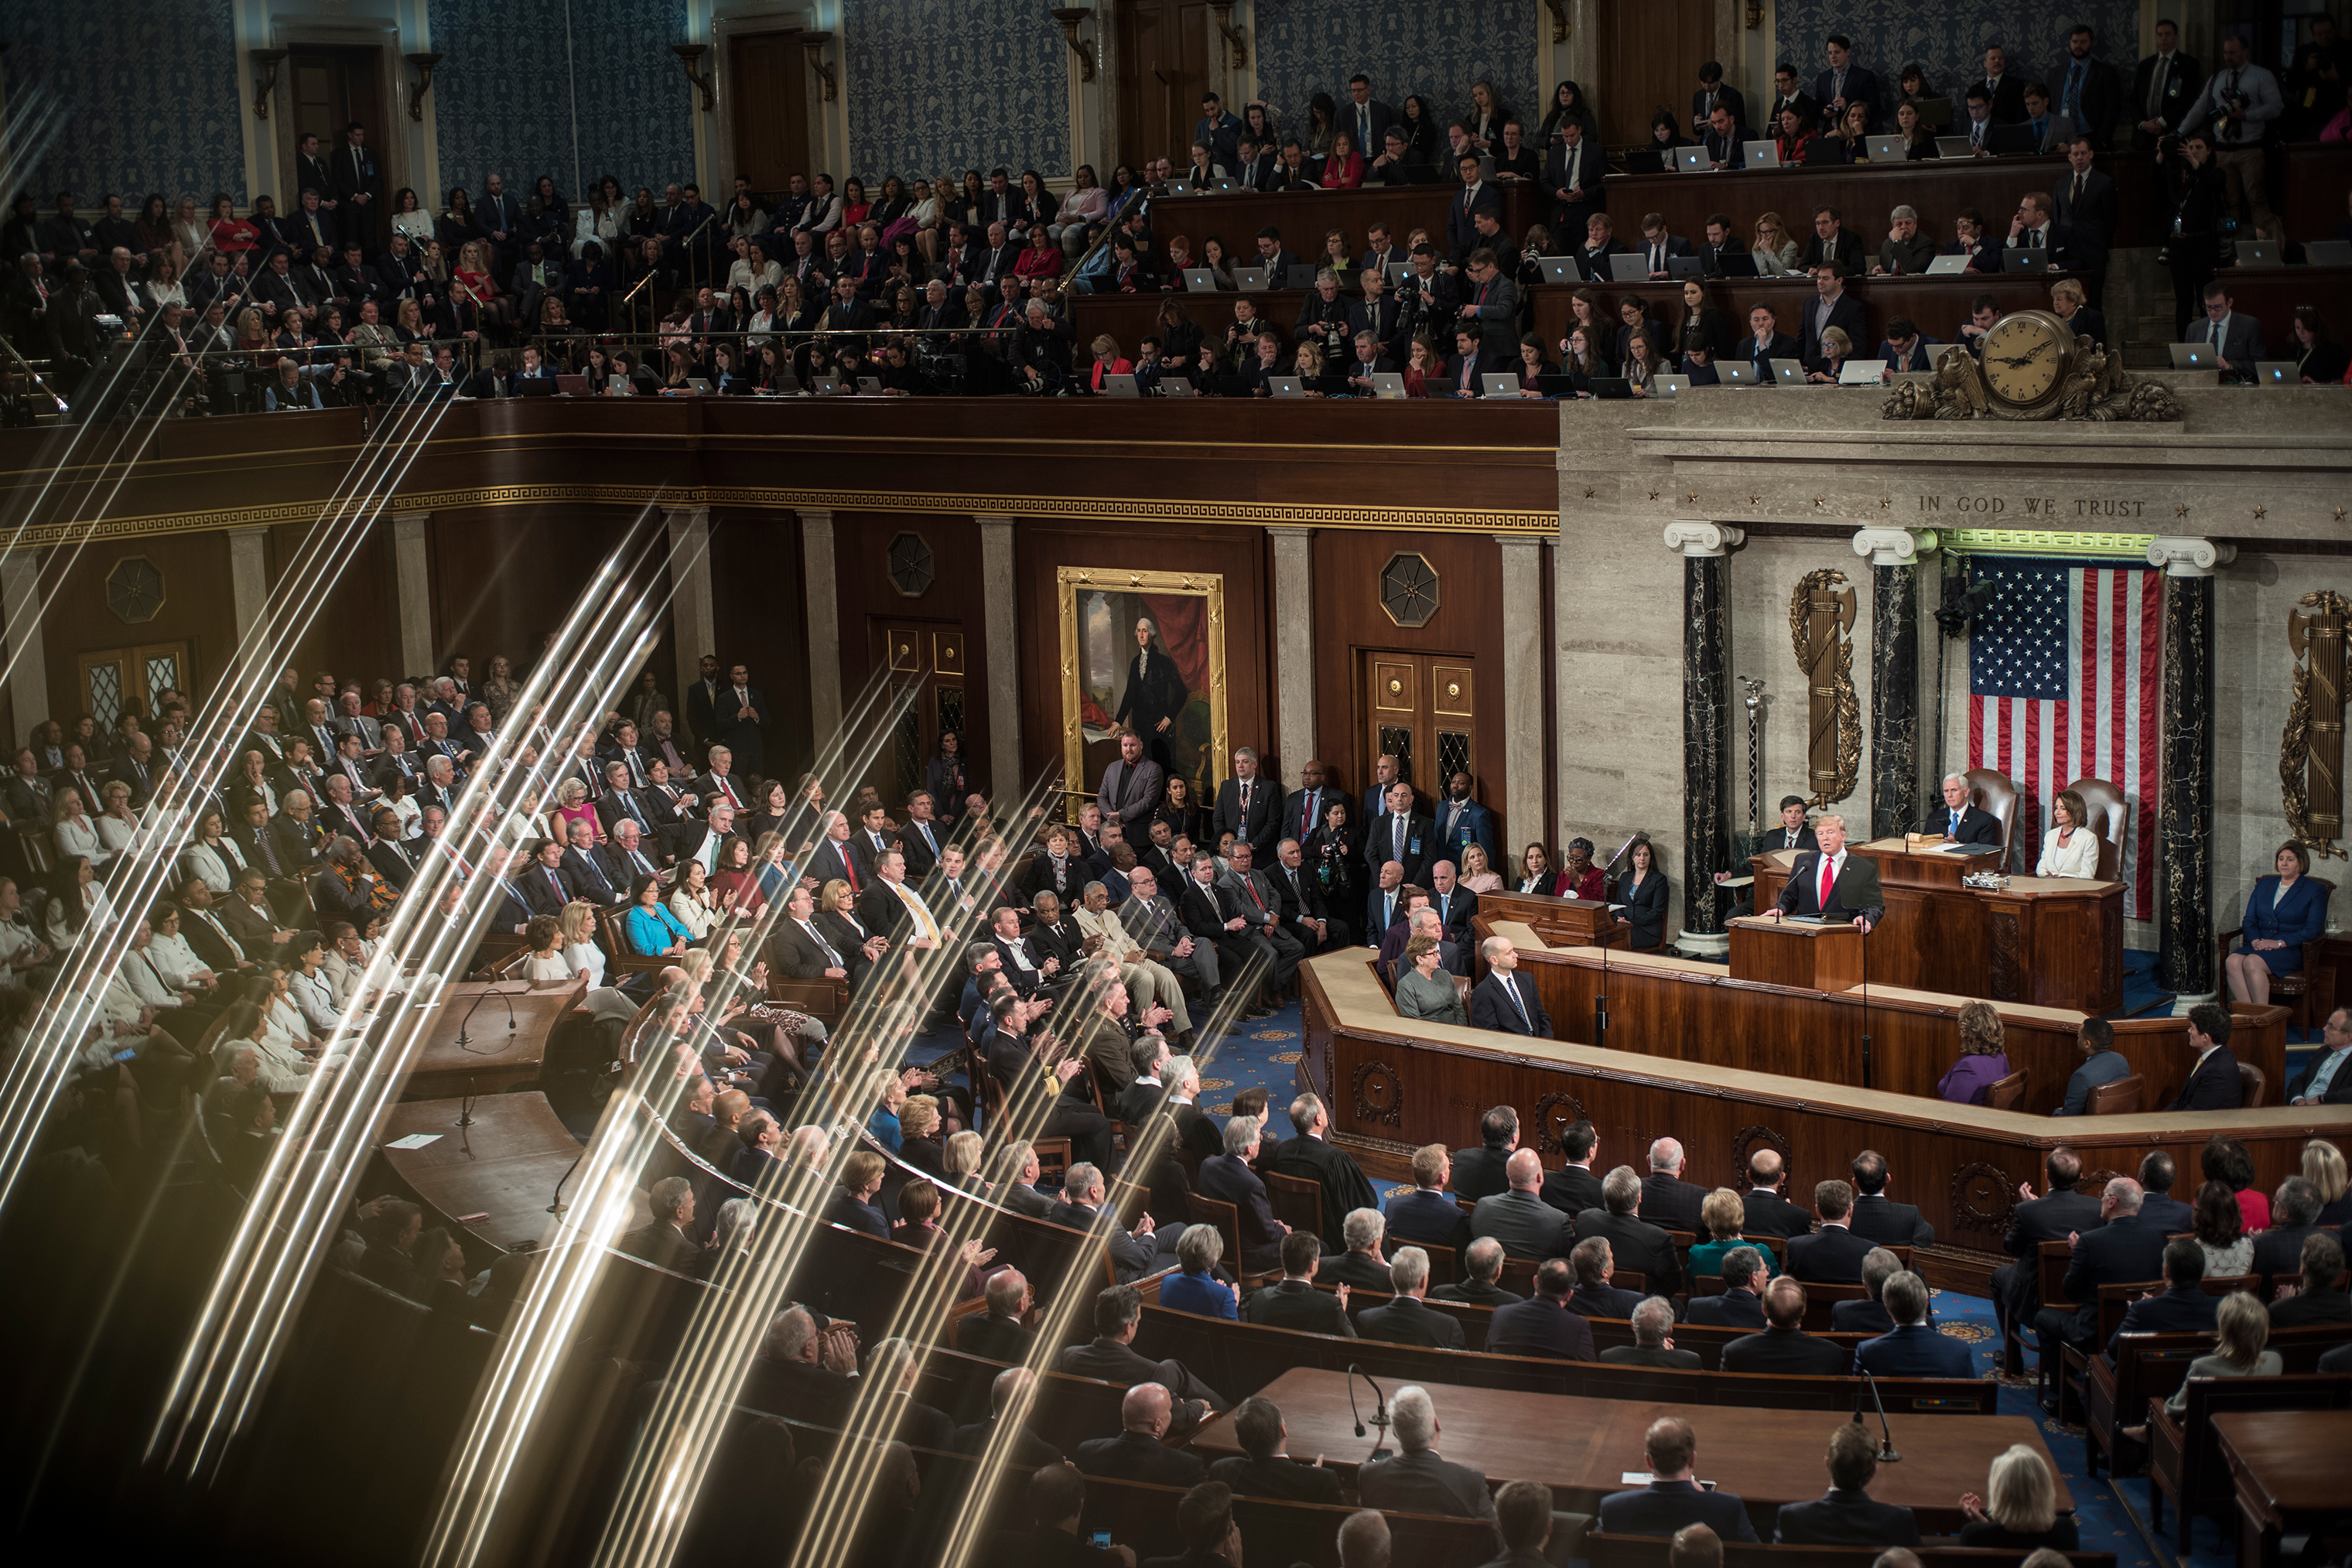 President Trump delivers his State of the Union remarks in Washington, D.C., on Feb. 5, 2019.